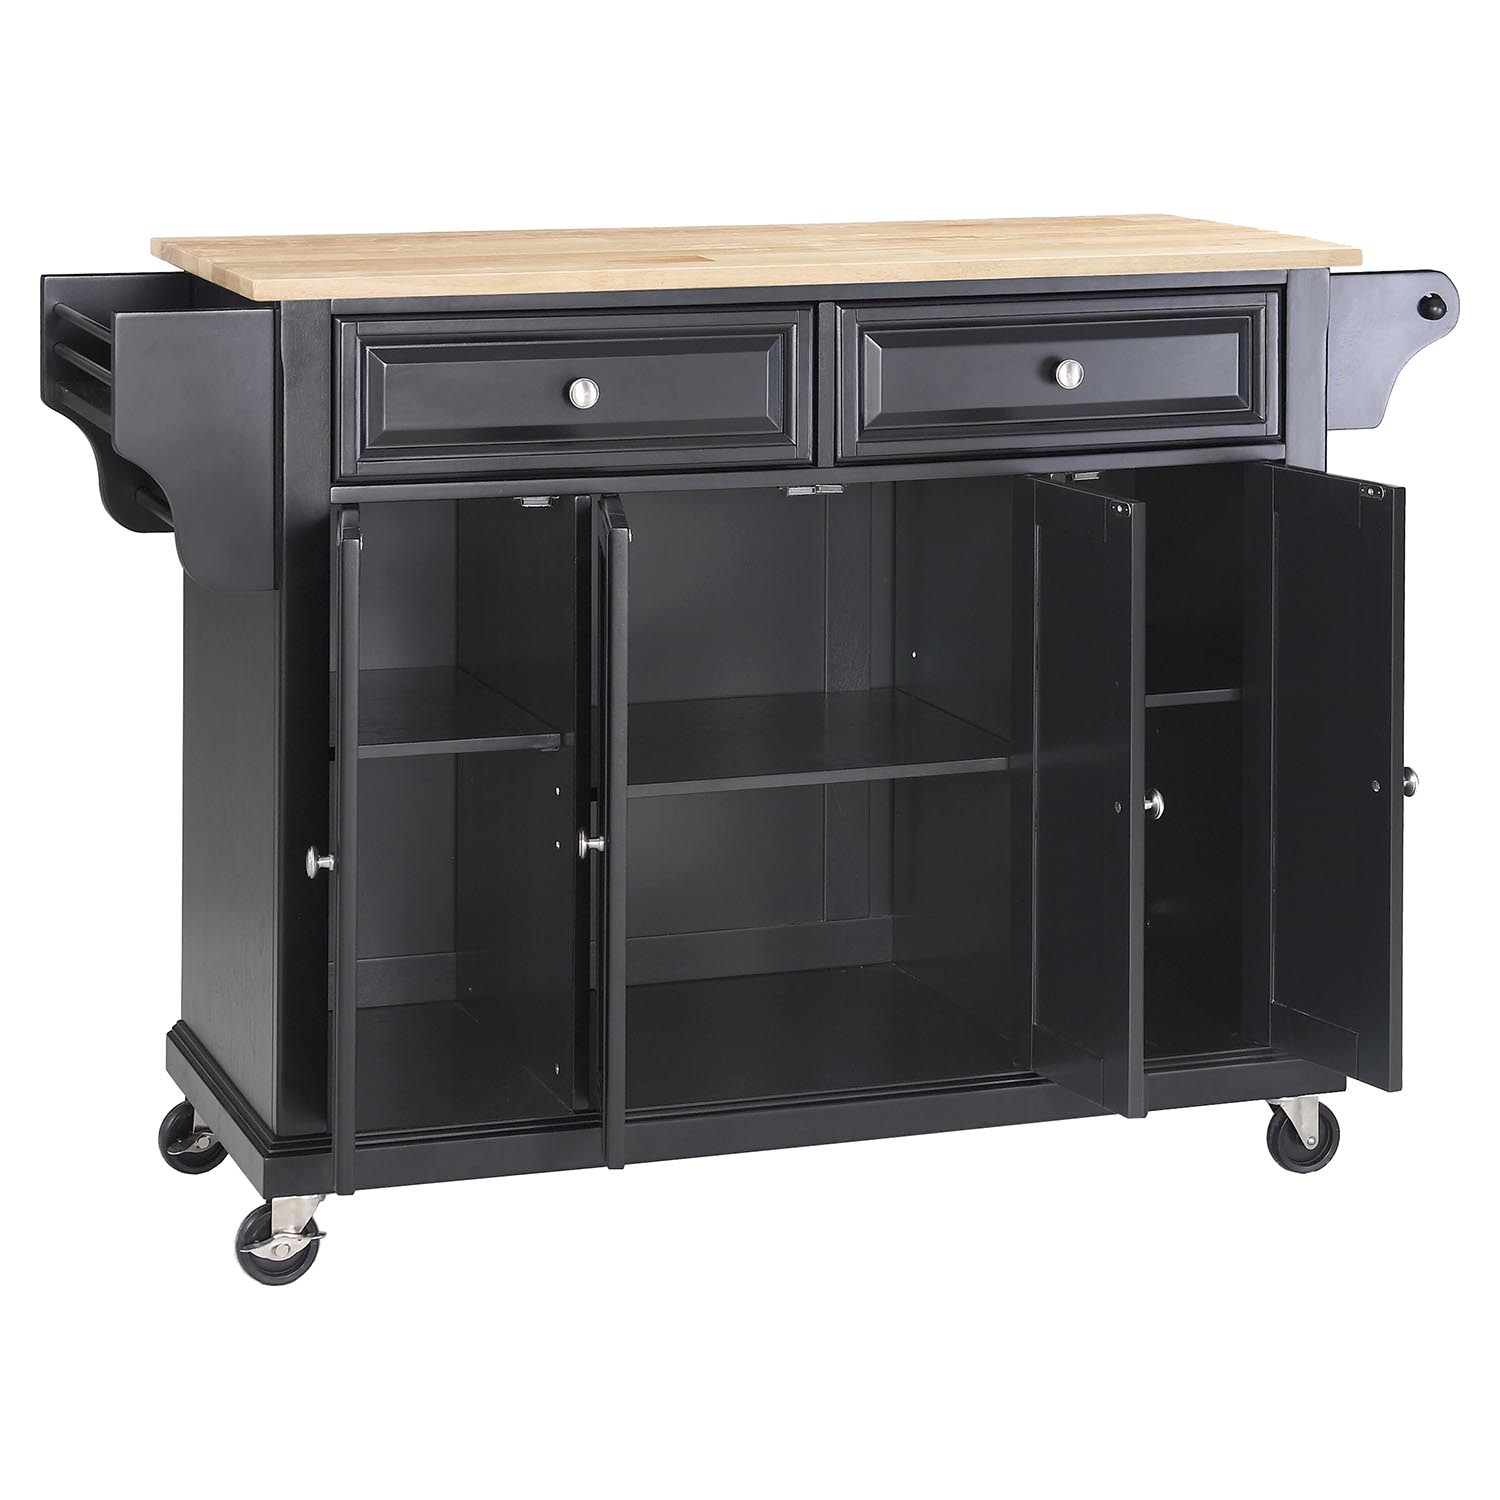 Natural Wood Top Kitchen Cart Island Casters Black Dcg Stores